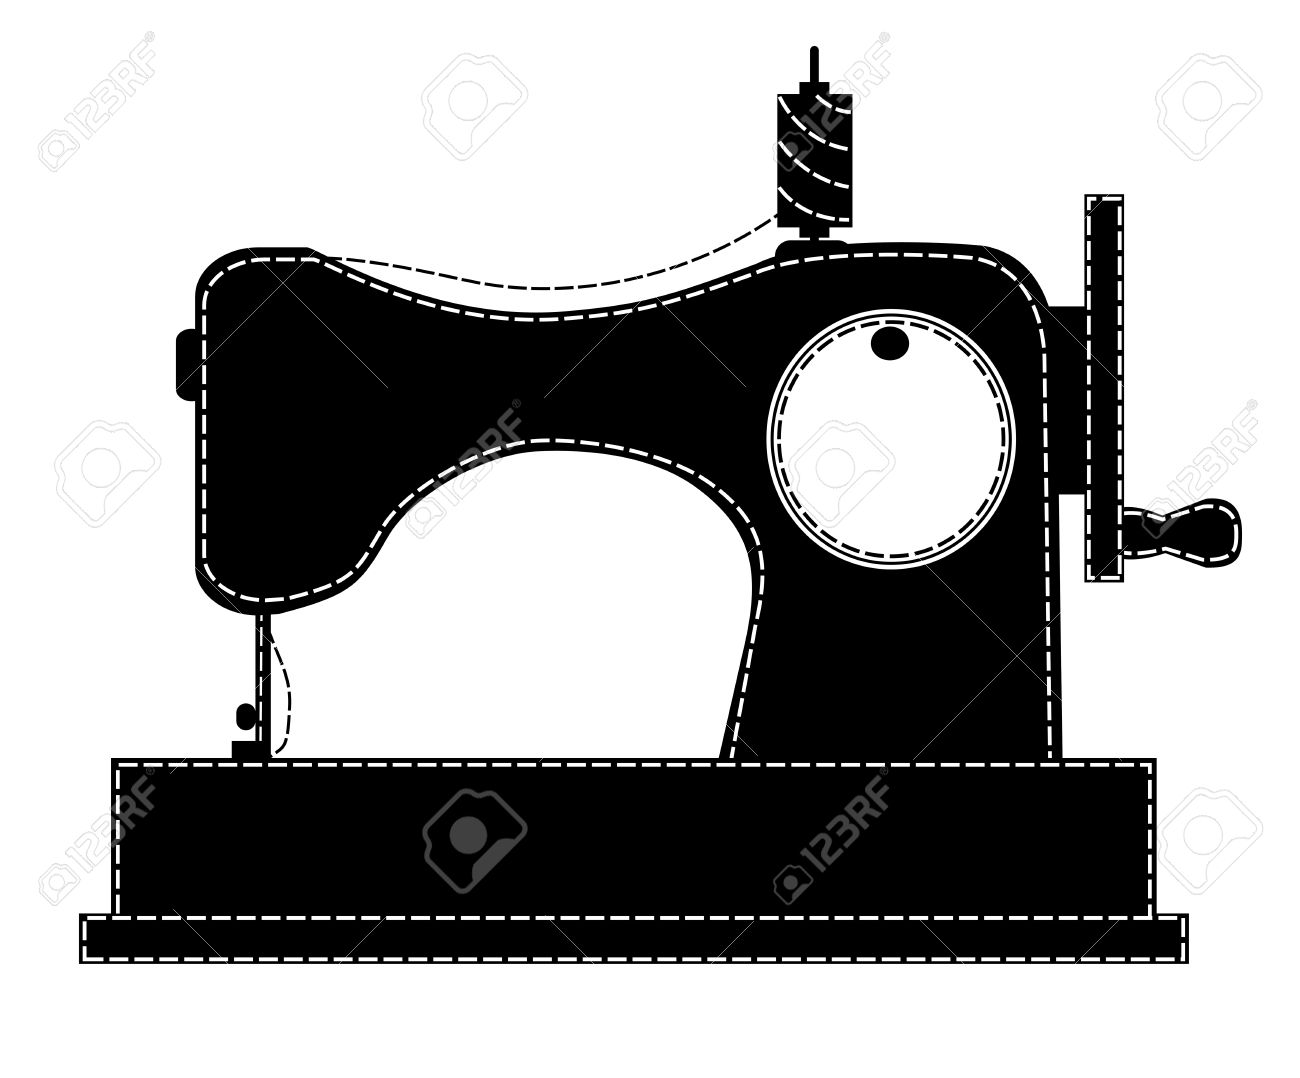 1300x1078 5,952 Sewing Machine Stock Vector Illustration And Royalty Free